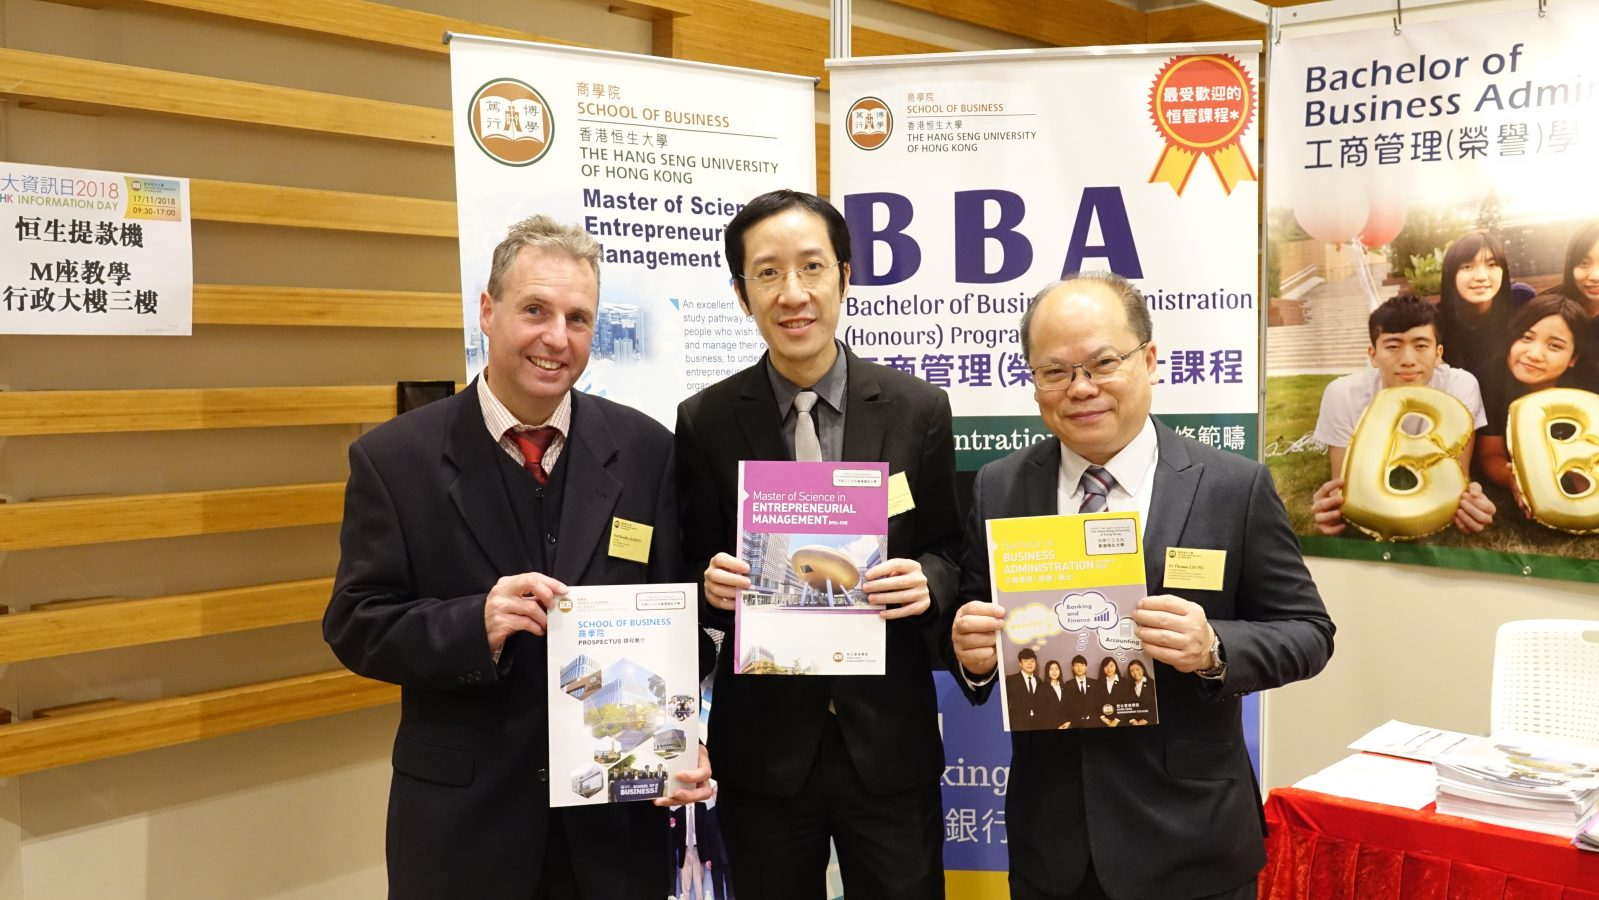 Prof Bradley Barnes (Left) (Dean of the School of Business), Dr Felix Tang (Middle) (Associate Director of the BBA Programme) and Dr Thomas Leung (Right) (Associate Dean of the School of Business and Director of the BBA Programme)